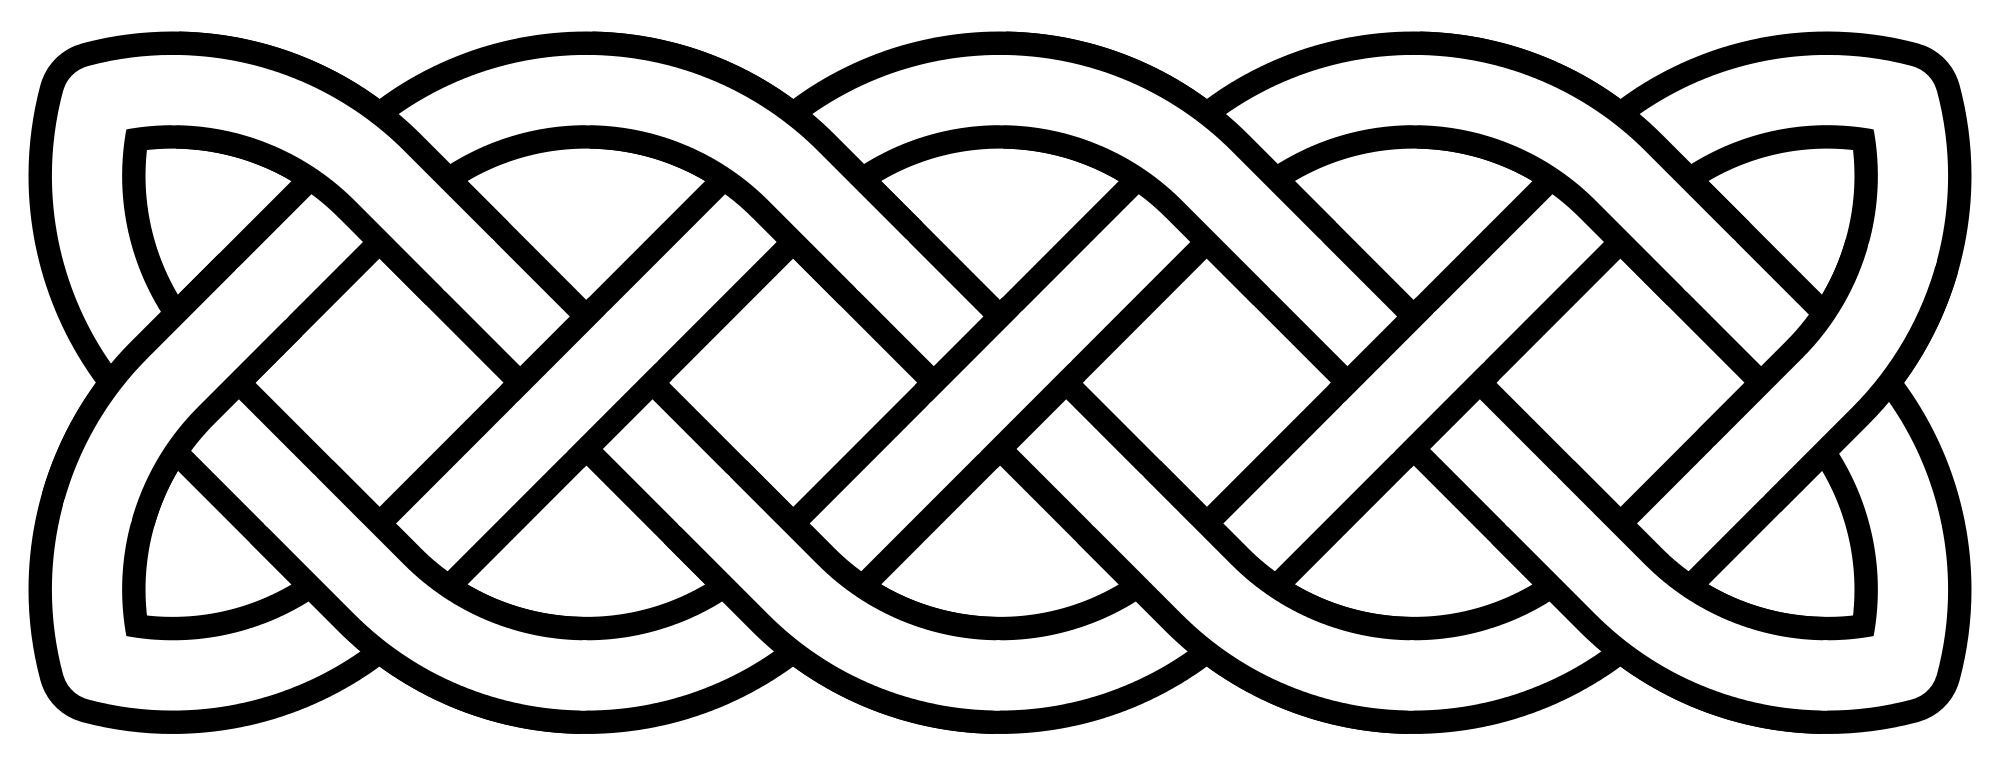 2000x763 Collection Of Free Cross Vector Celtic Knot. Download On Ubisafe